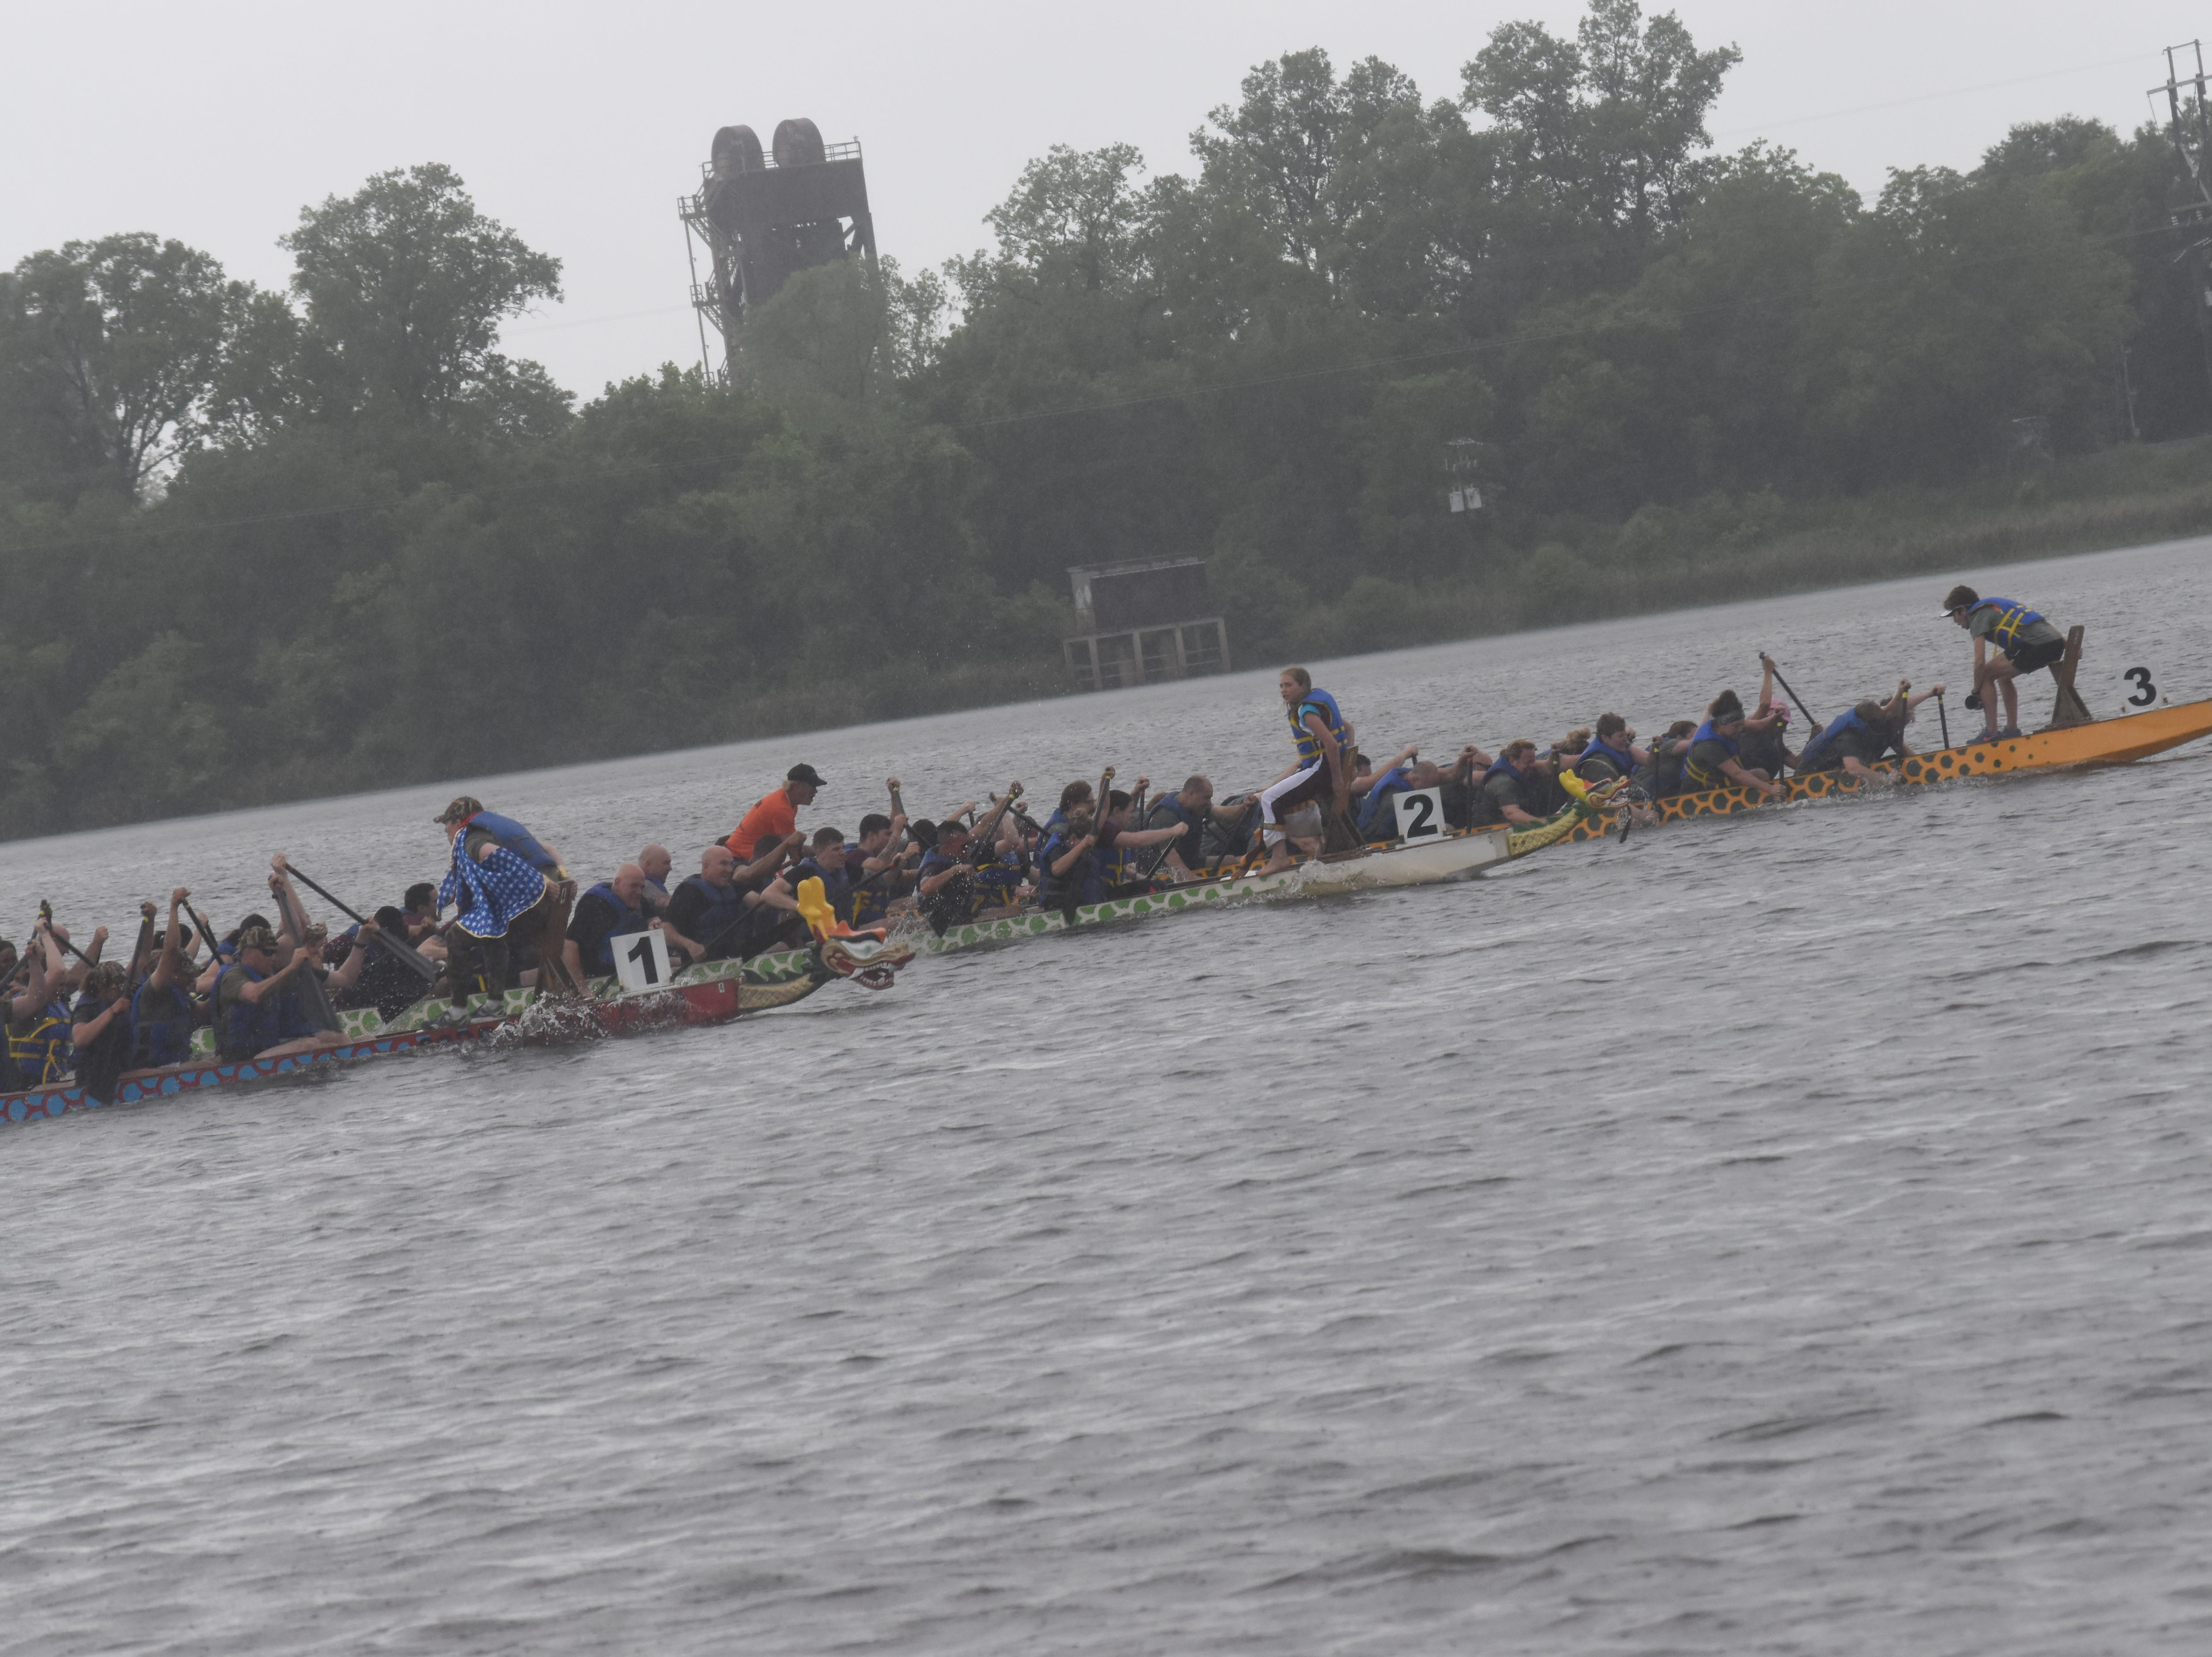 The 2019 Louisiana Dragon Boat Races were held Saturday, May 4, 2019 with nineteen teams competing in the ninth annual event. Roy O. Martin Team 2, the World Class Rowers, are the champions for 2019.